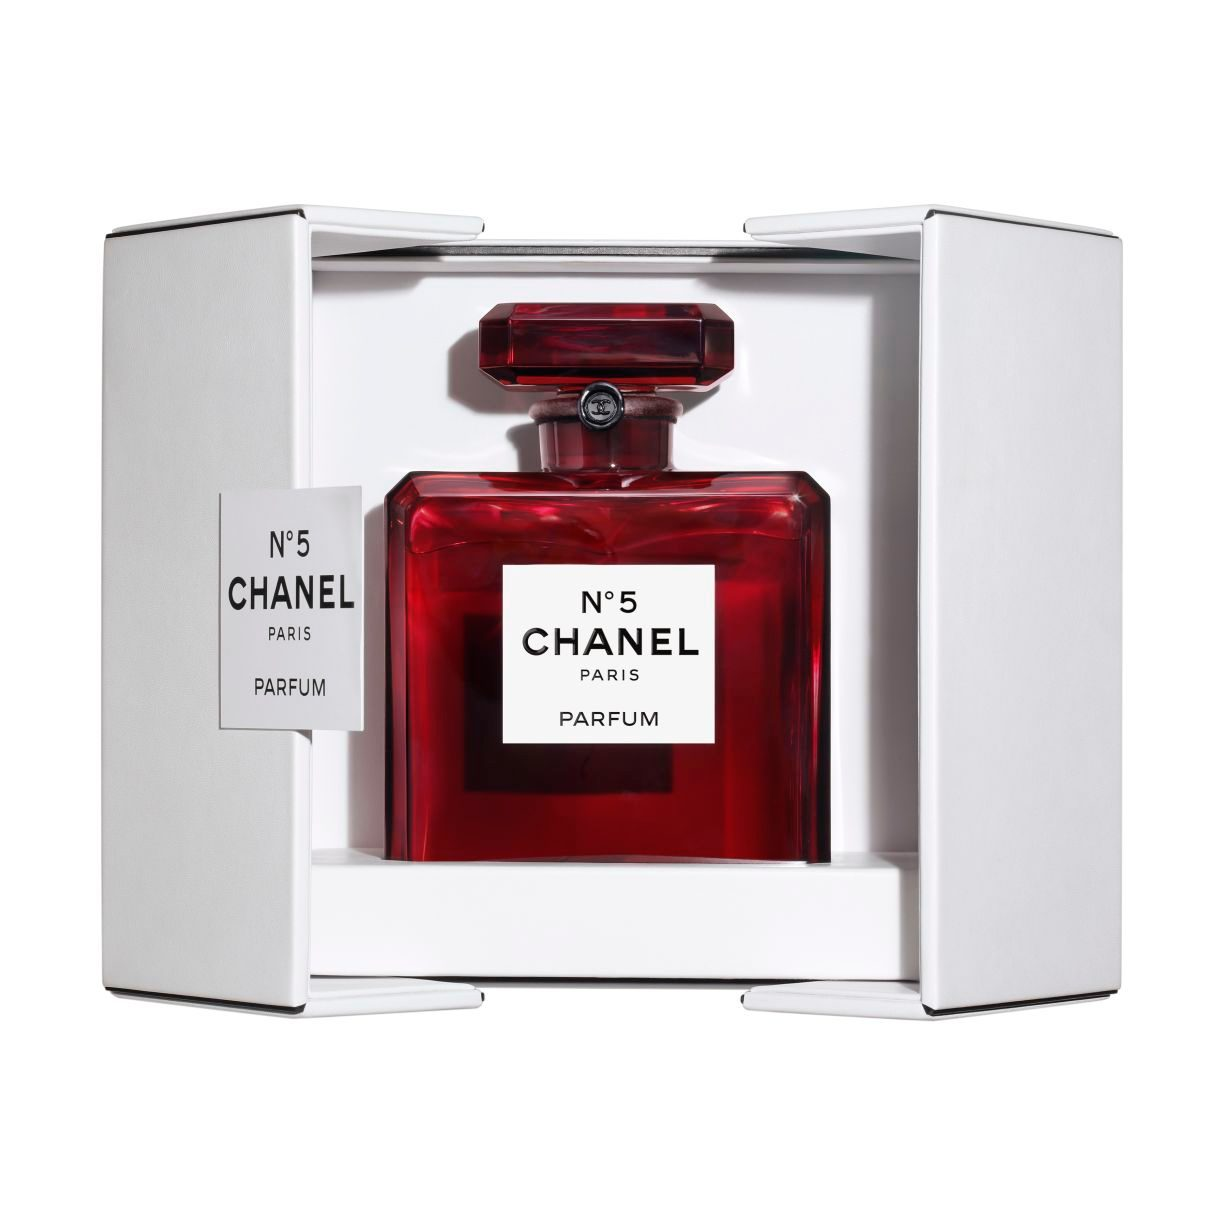 N°5 GRAND EXTRAIT BACCARAT LIMITED EDITION